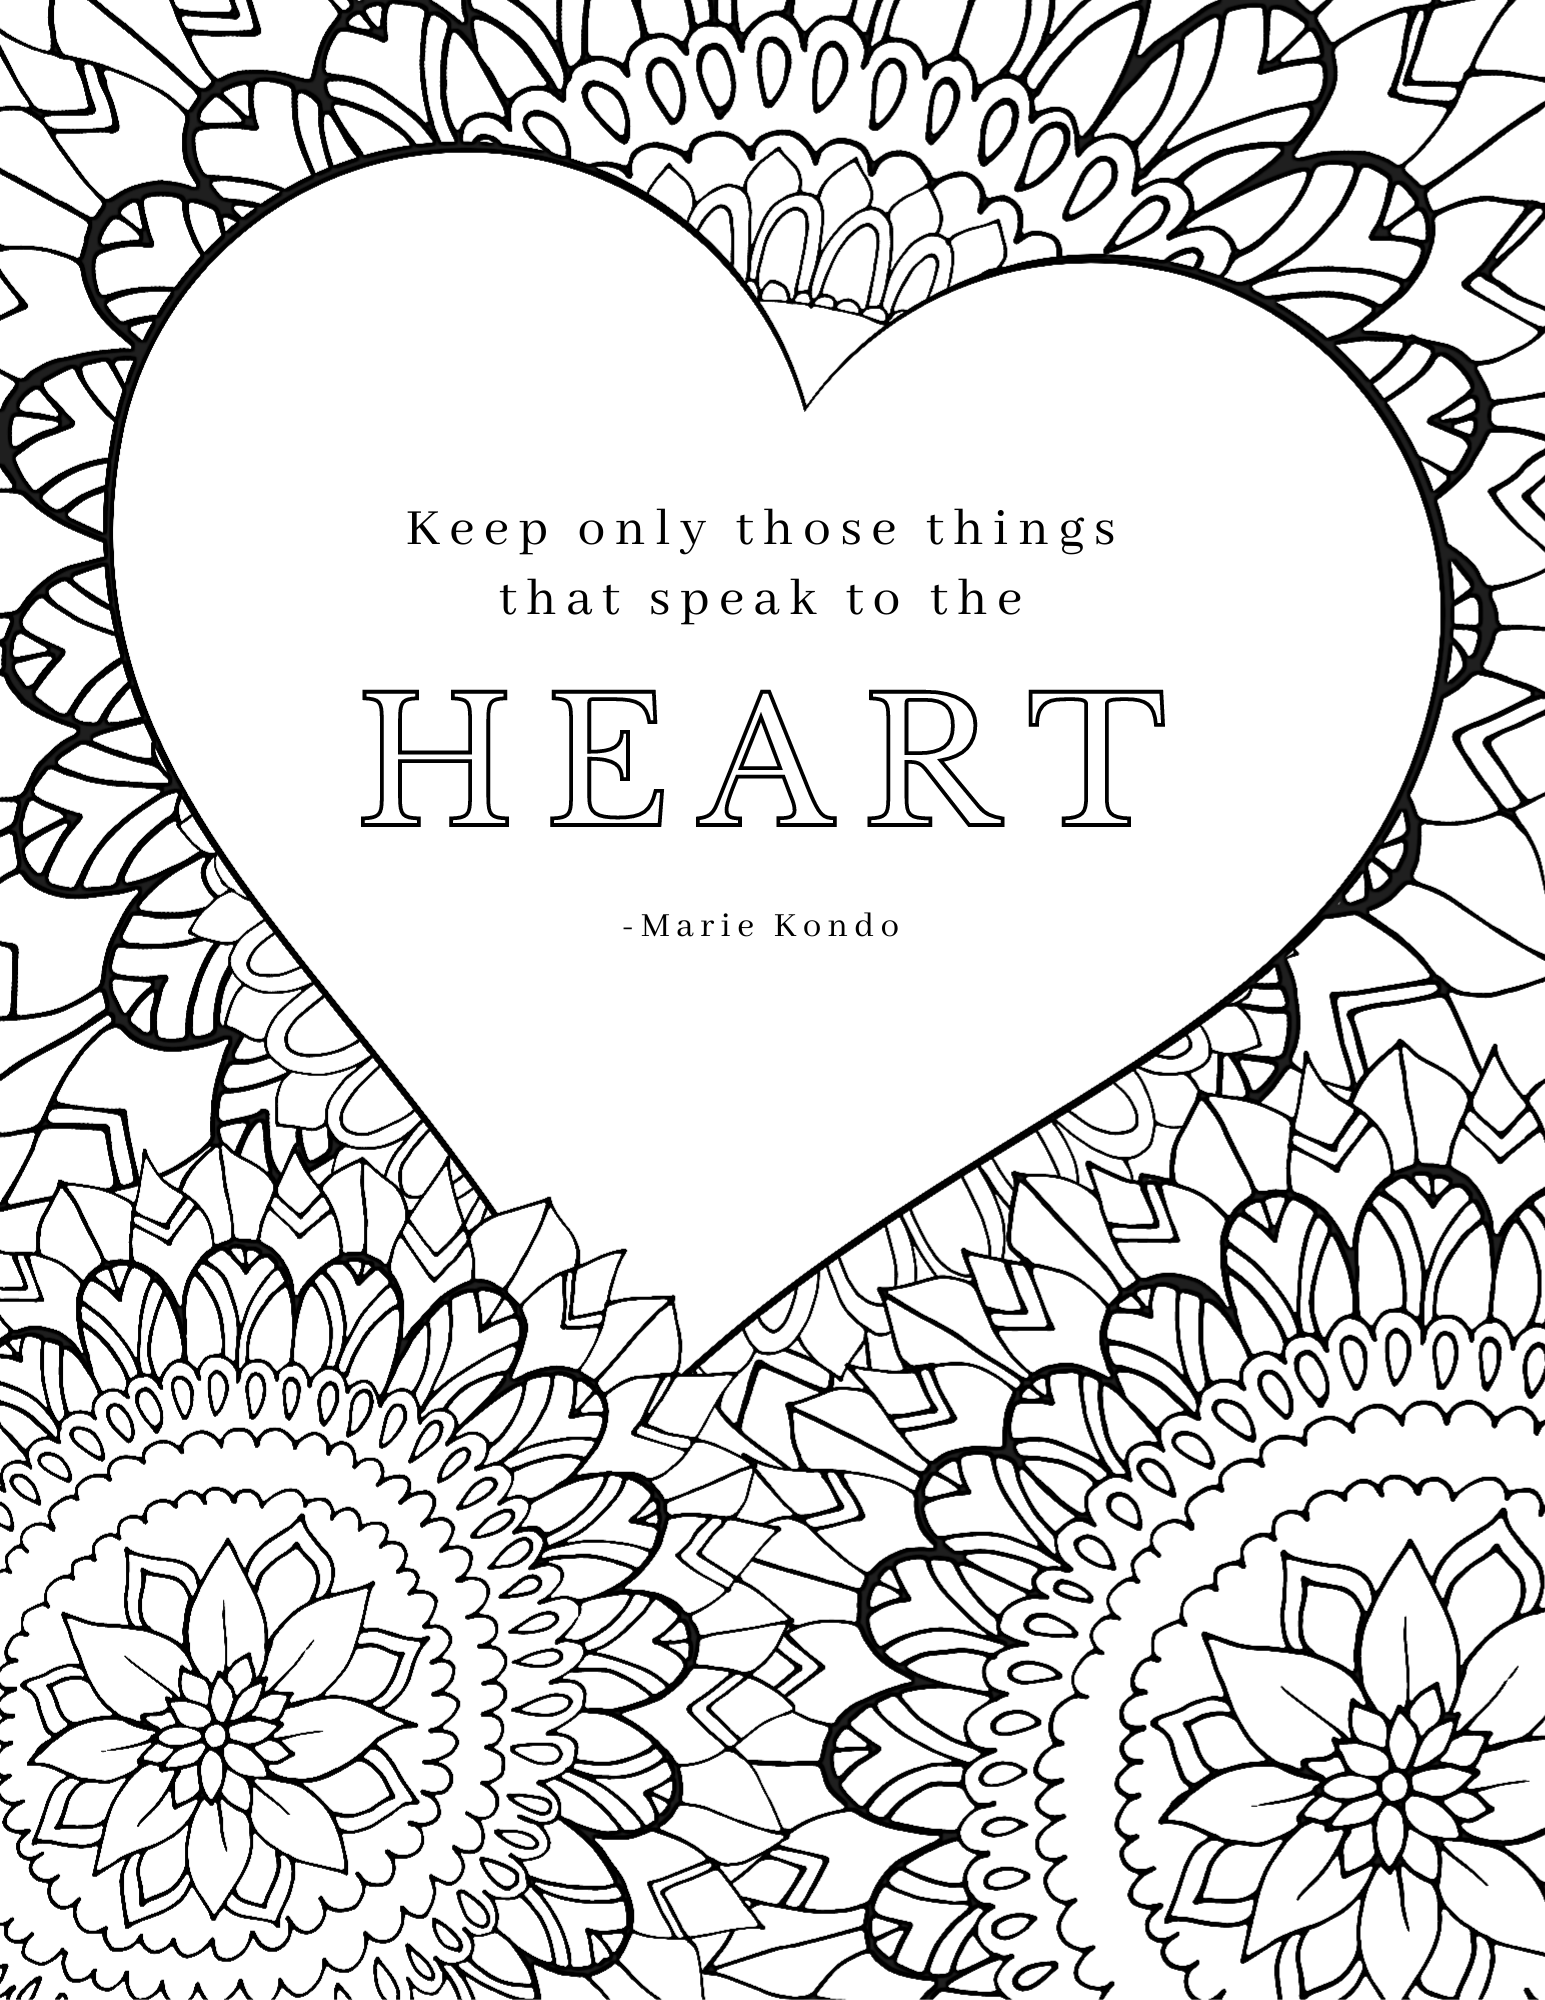 200 Breathtaking Free Printable Adult Coloring Pages For Chronic Illness Warriors Chronic Illness Warrior Life